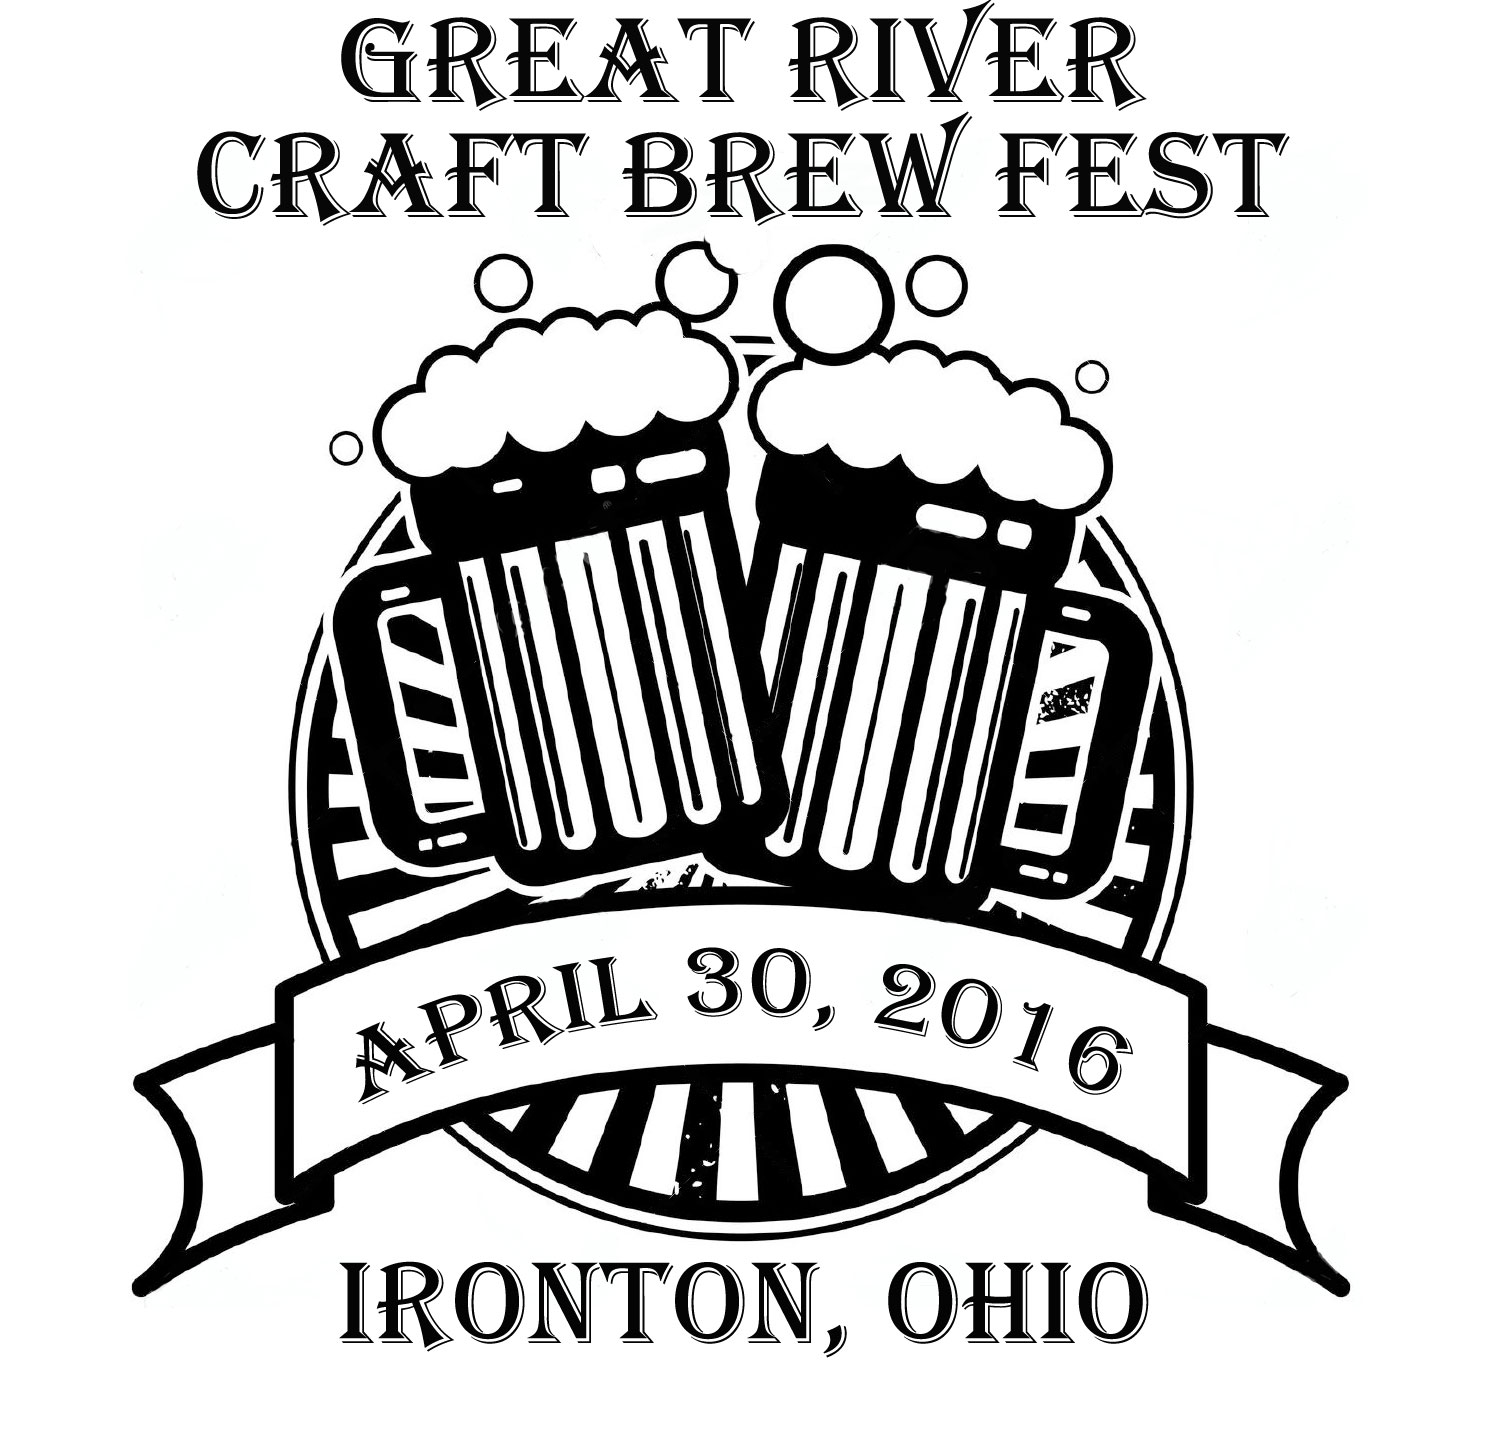 Tickets For Great River Craft Brew Fest In Ironton From